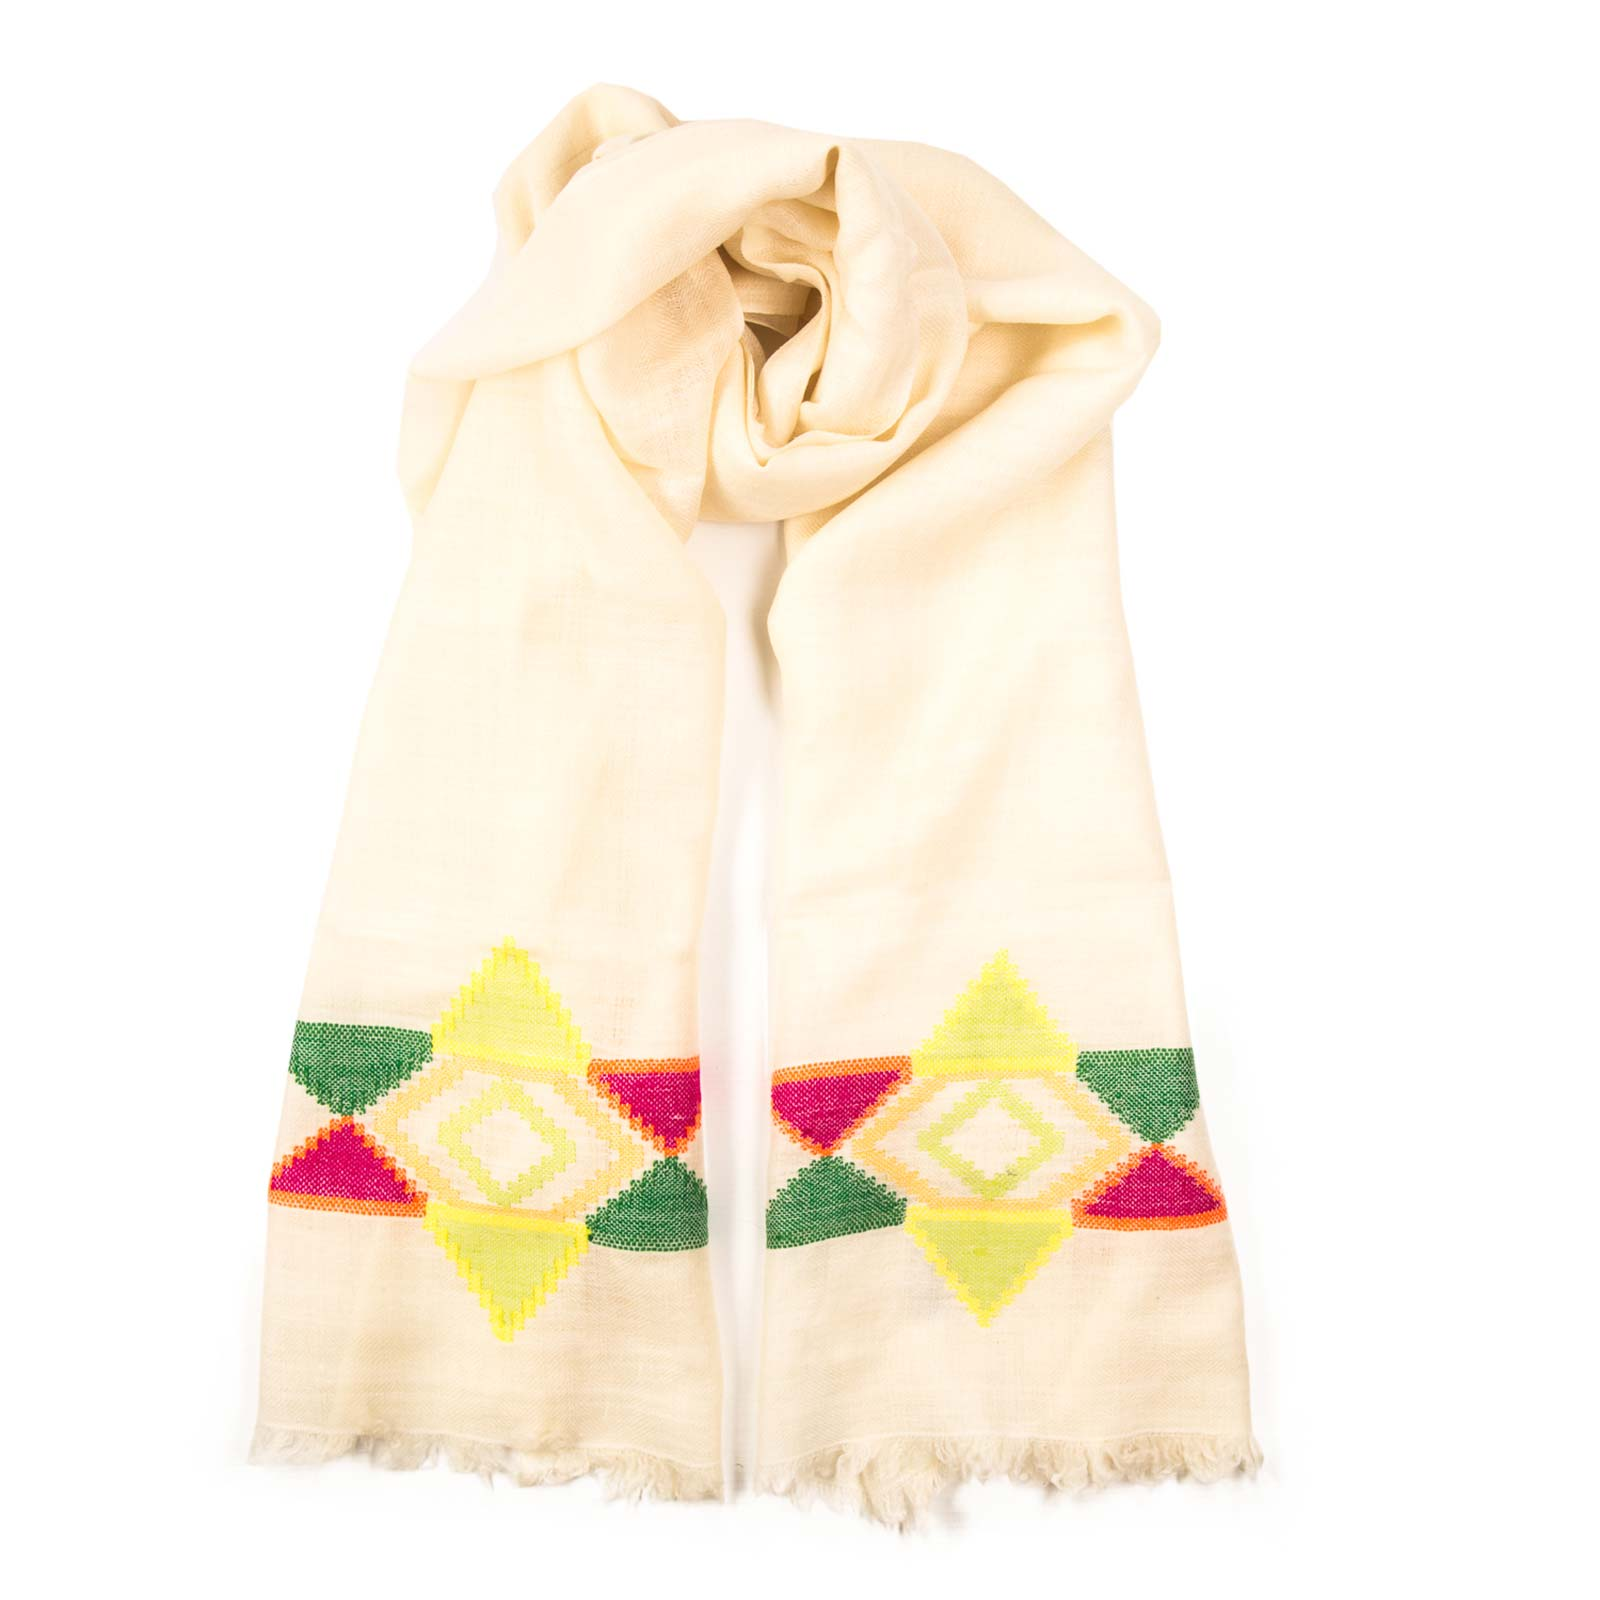 North star shawl bursts with a rainbow star and is color set on a white background. Made up of luxurious lightweight Pashmina, the scarf is hand woven. From Beshlie Mckelvie.